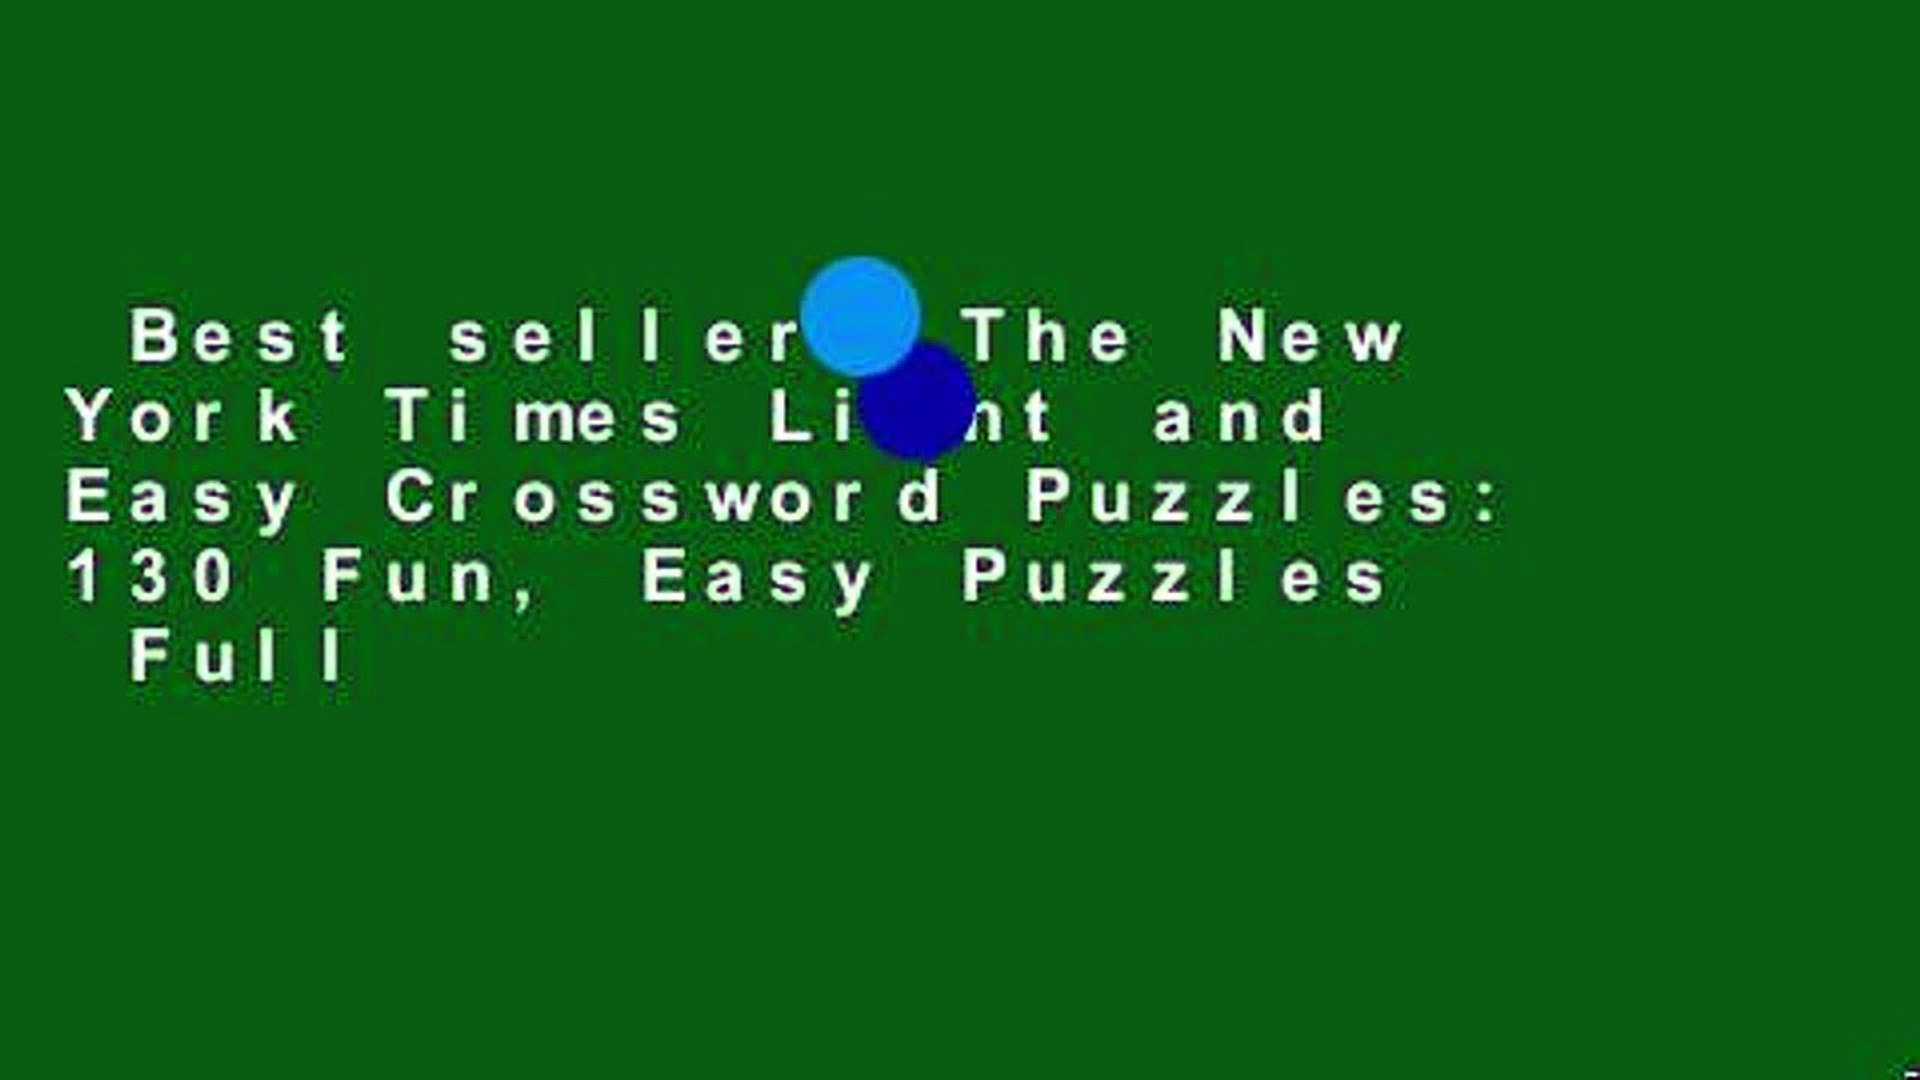 Best seller  The New York Times Light and Easy Crossword Puzzles: 130 Fun, Easy Puzzles  Full